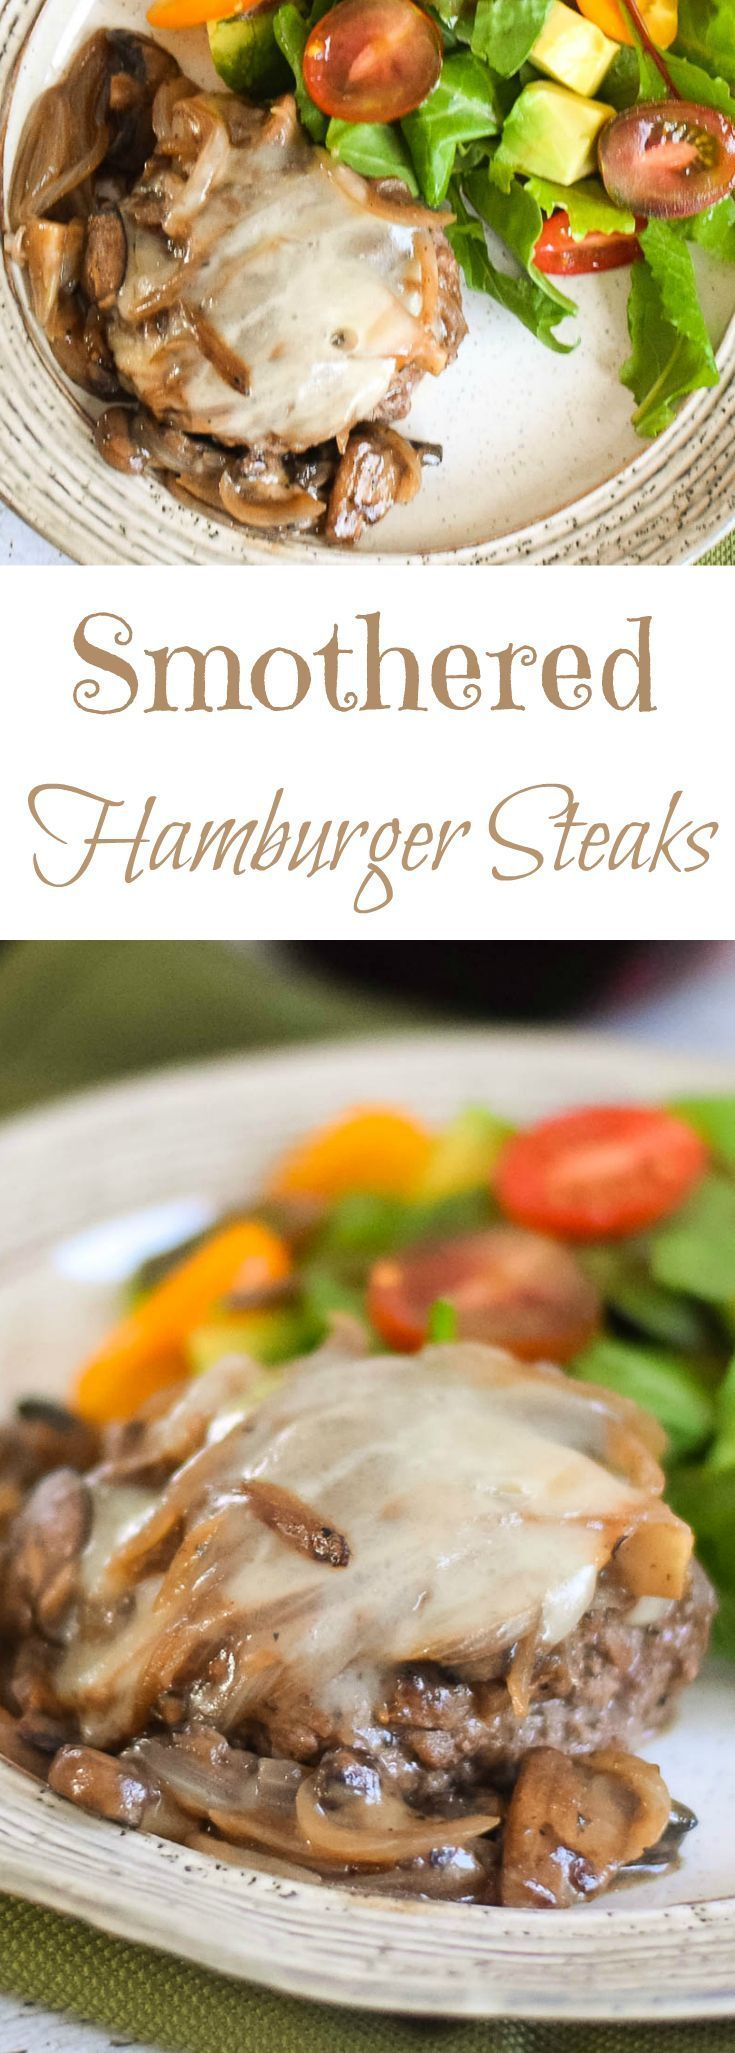 Smothered Hamburger Steaks -Sweet onions cooked to a caramel goodness, topped with sauteed mushrooms and cheese covered lean hamburger! #SundaySupper